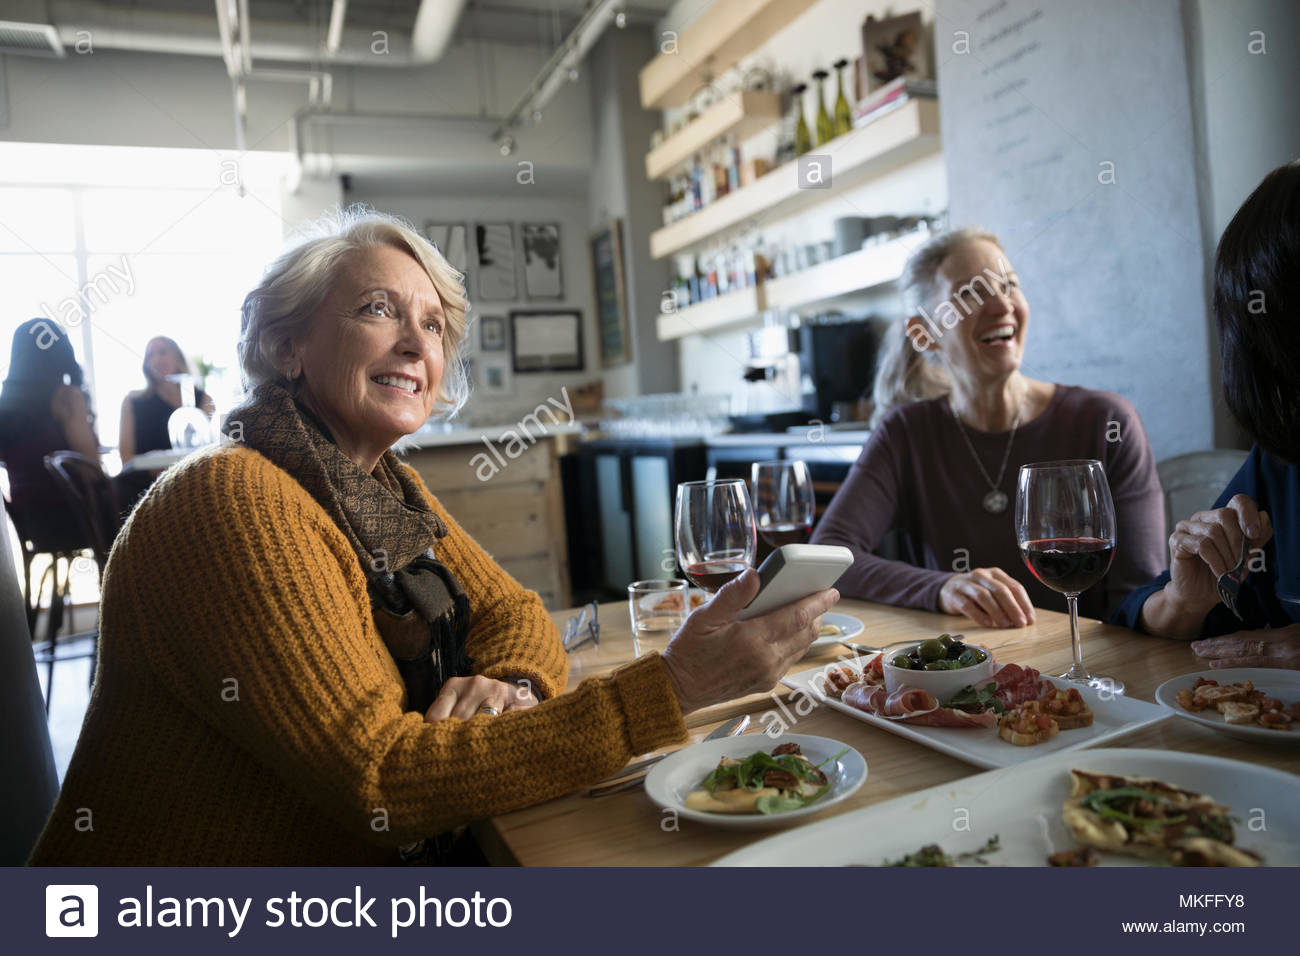 Smiling active senior woman with smart phone eating and drinking red wine with friends in cafe - Stock Image